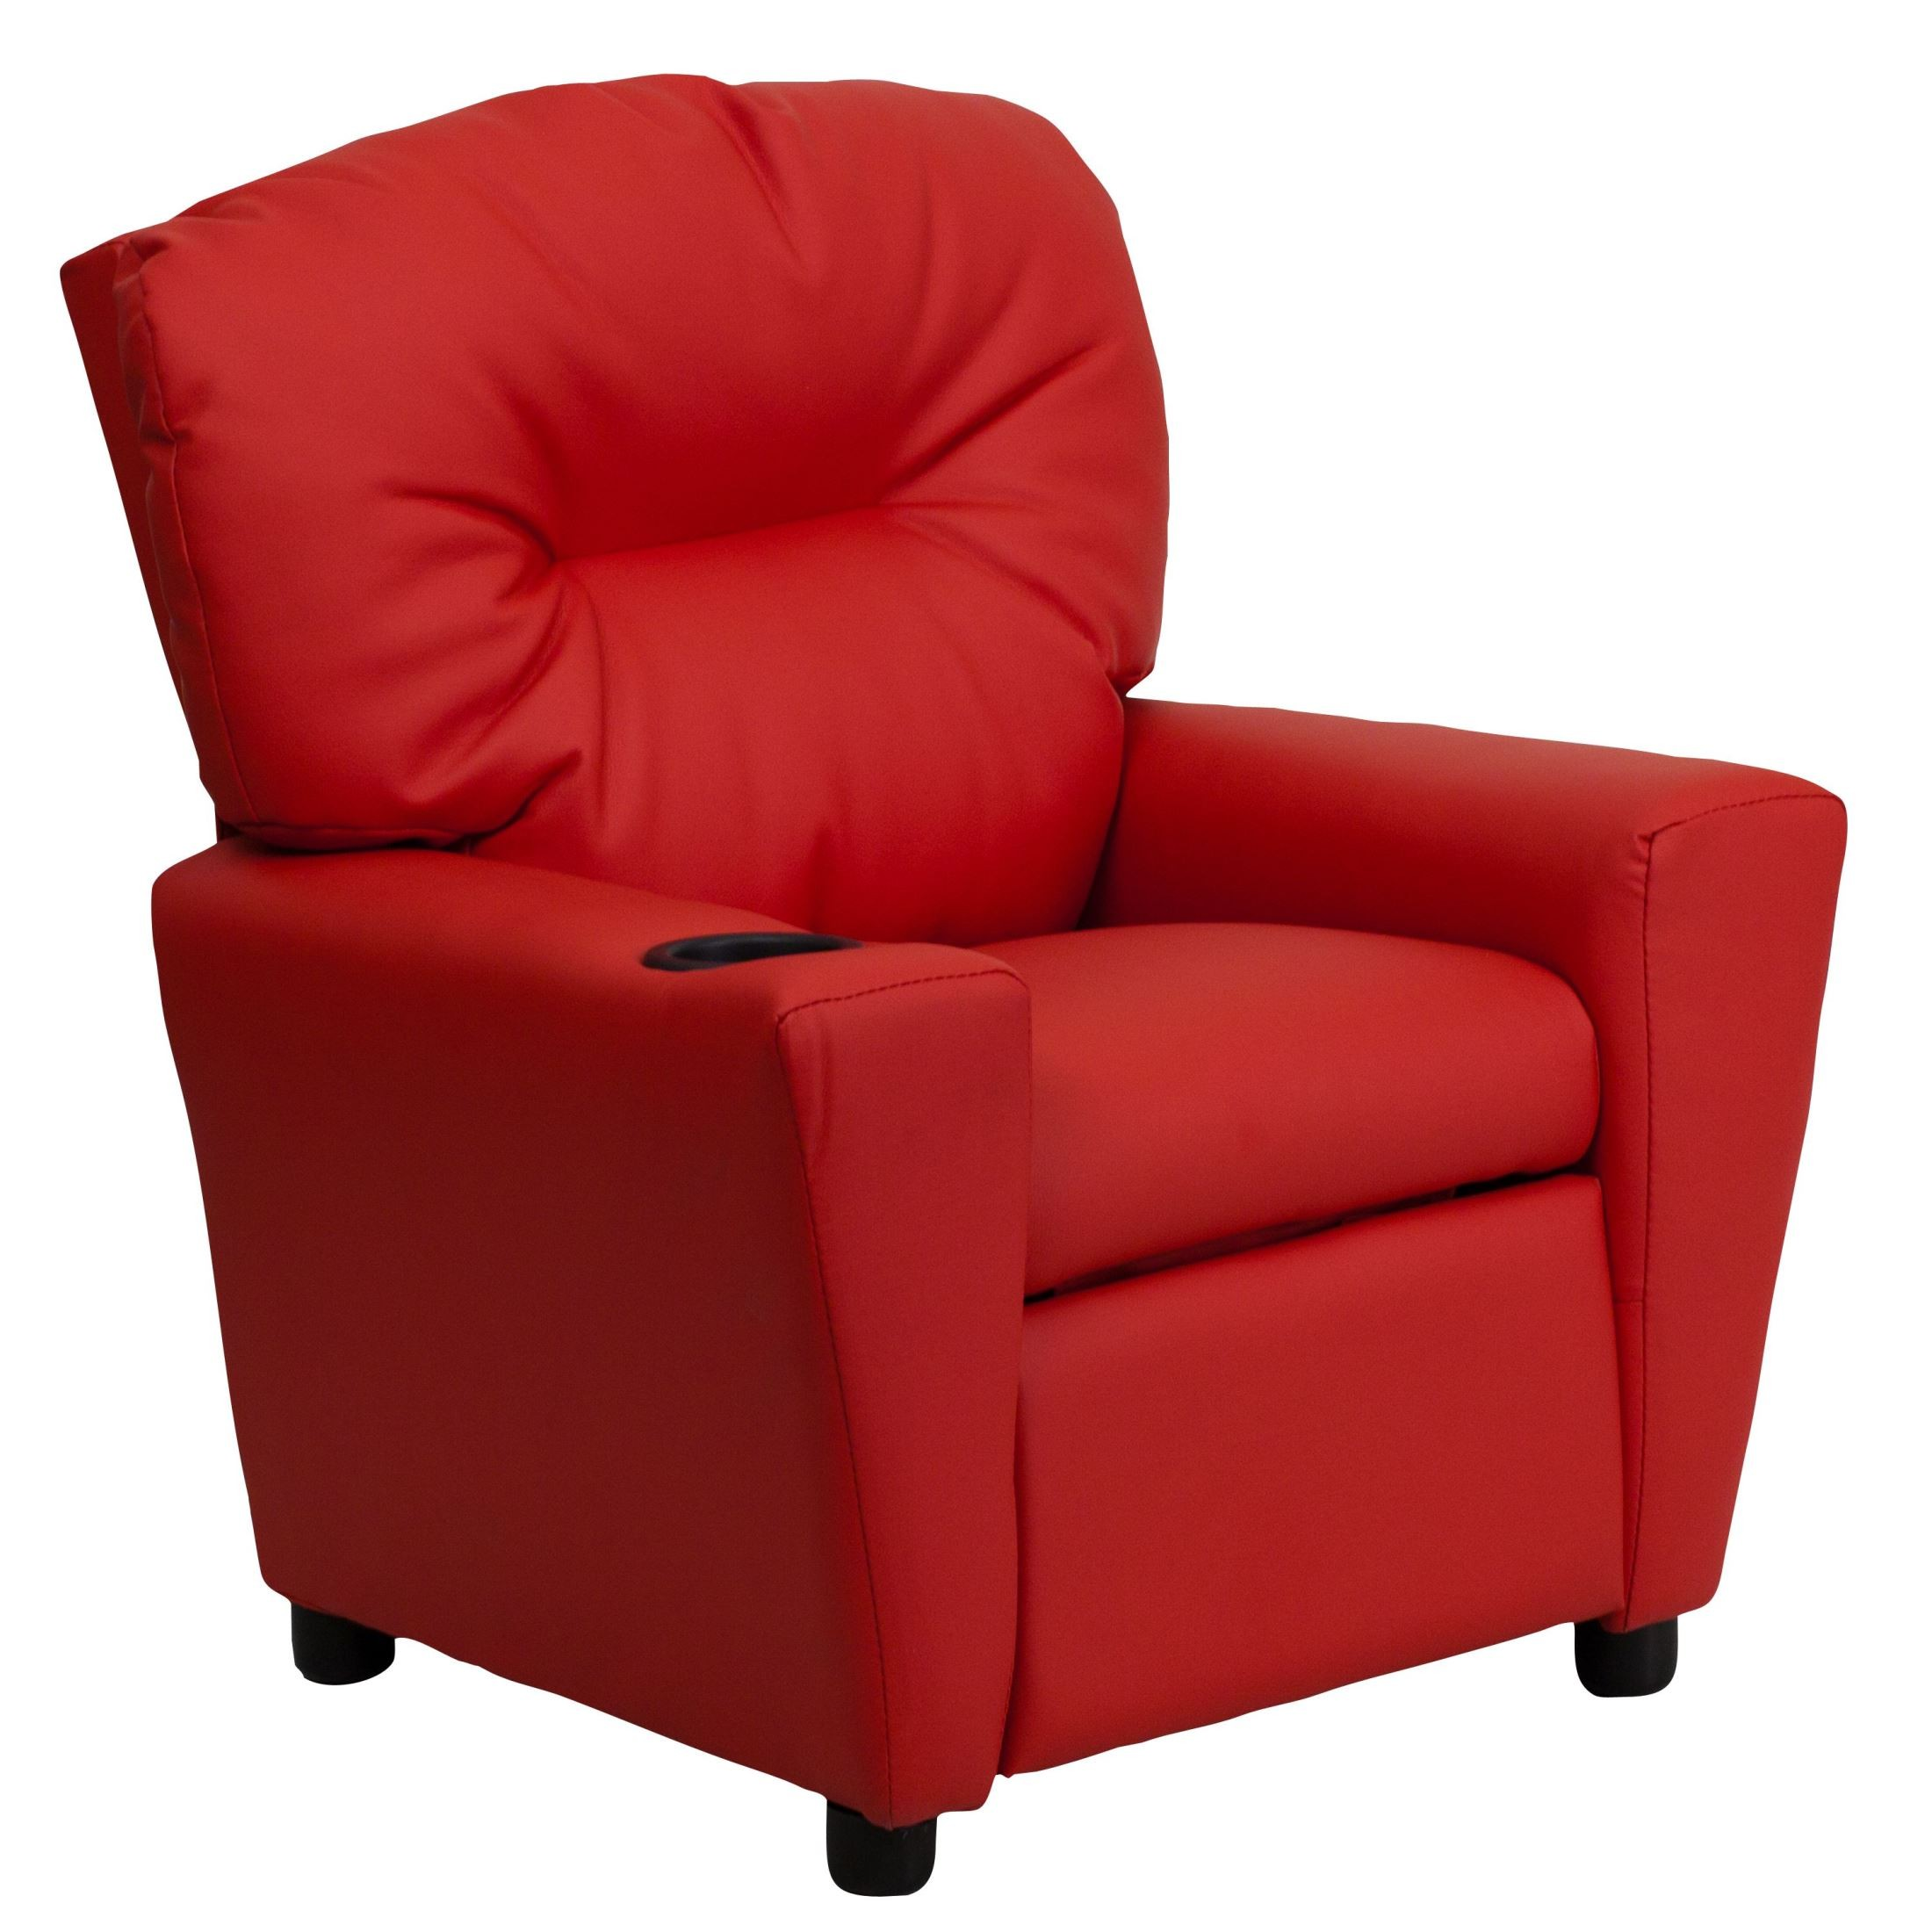 Red vinyl kids recliner with cup holder from renegade bt for Kids sitting furniture